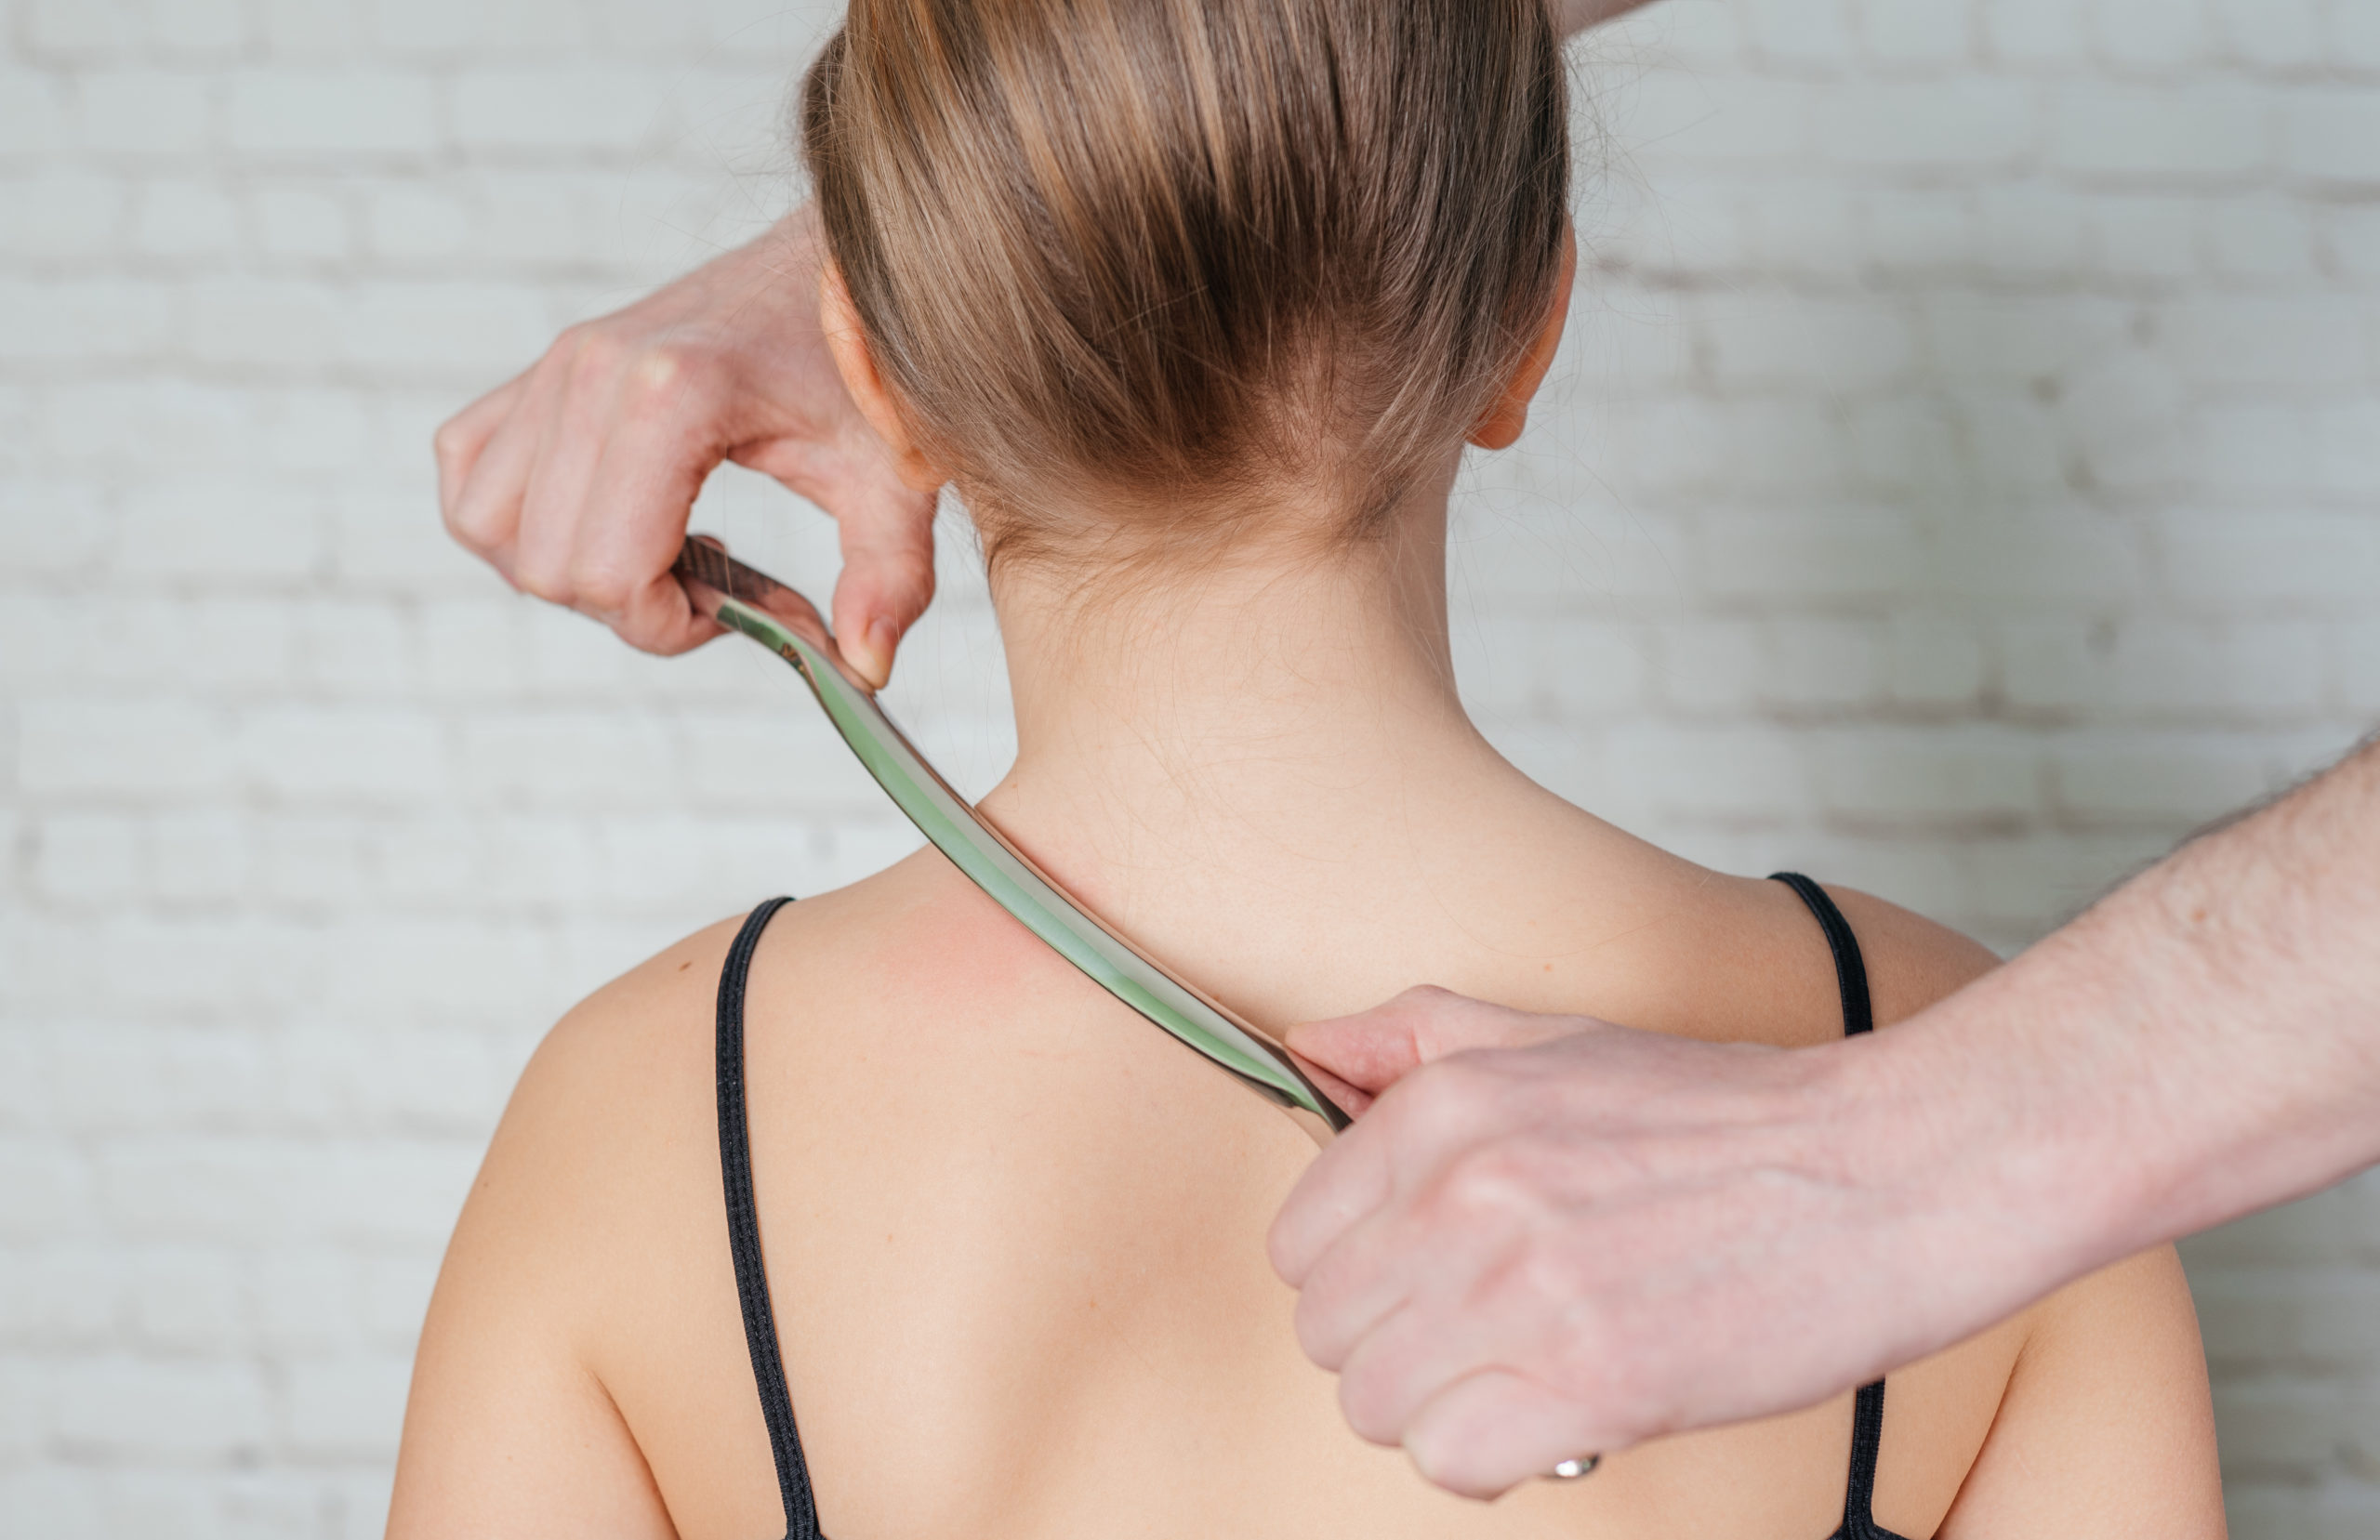 Physiotherapist treating a soft tissue injury to the shoulder and neck area